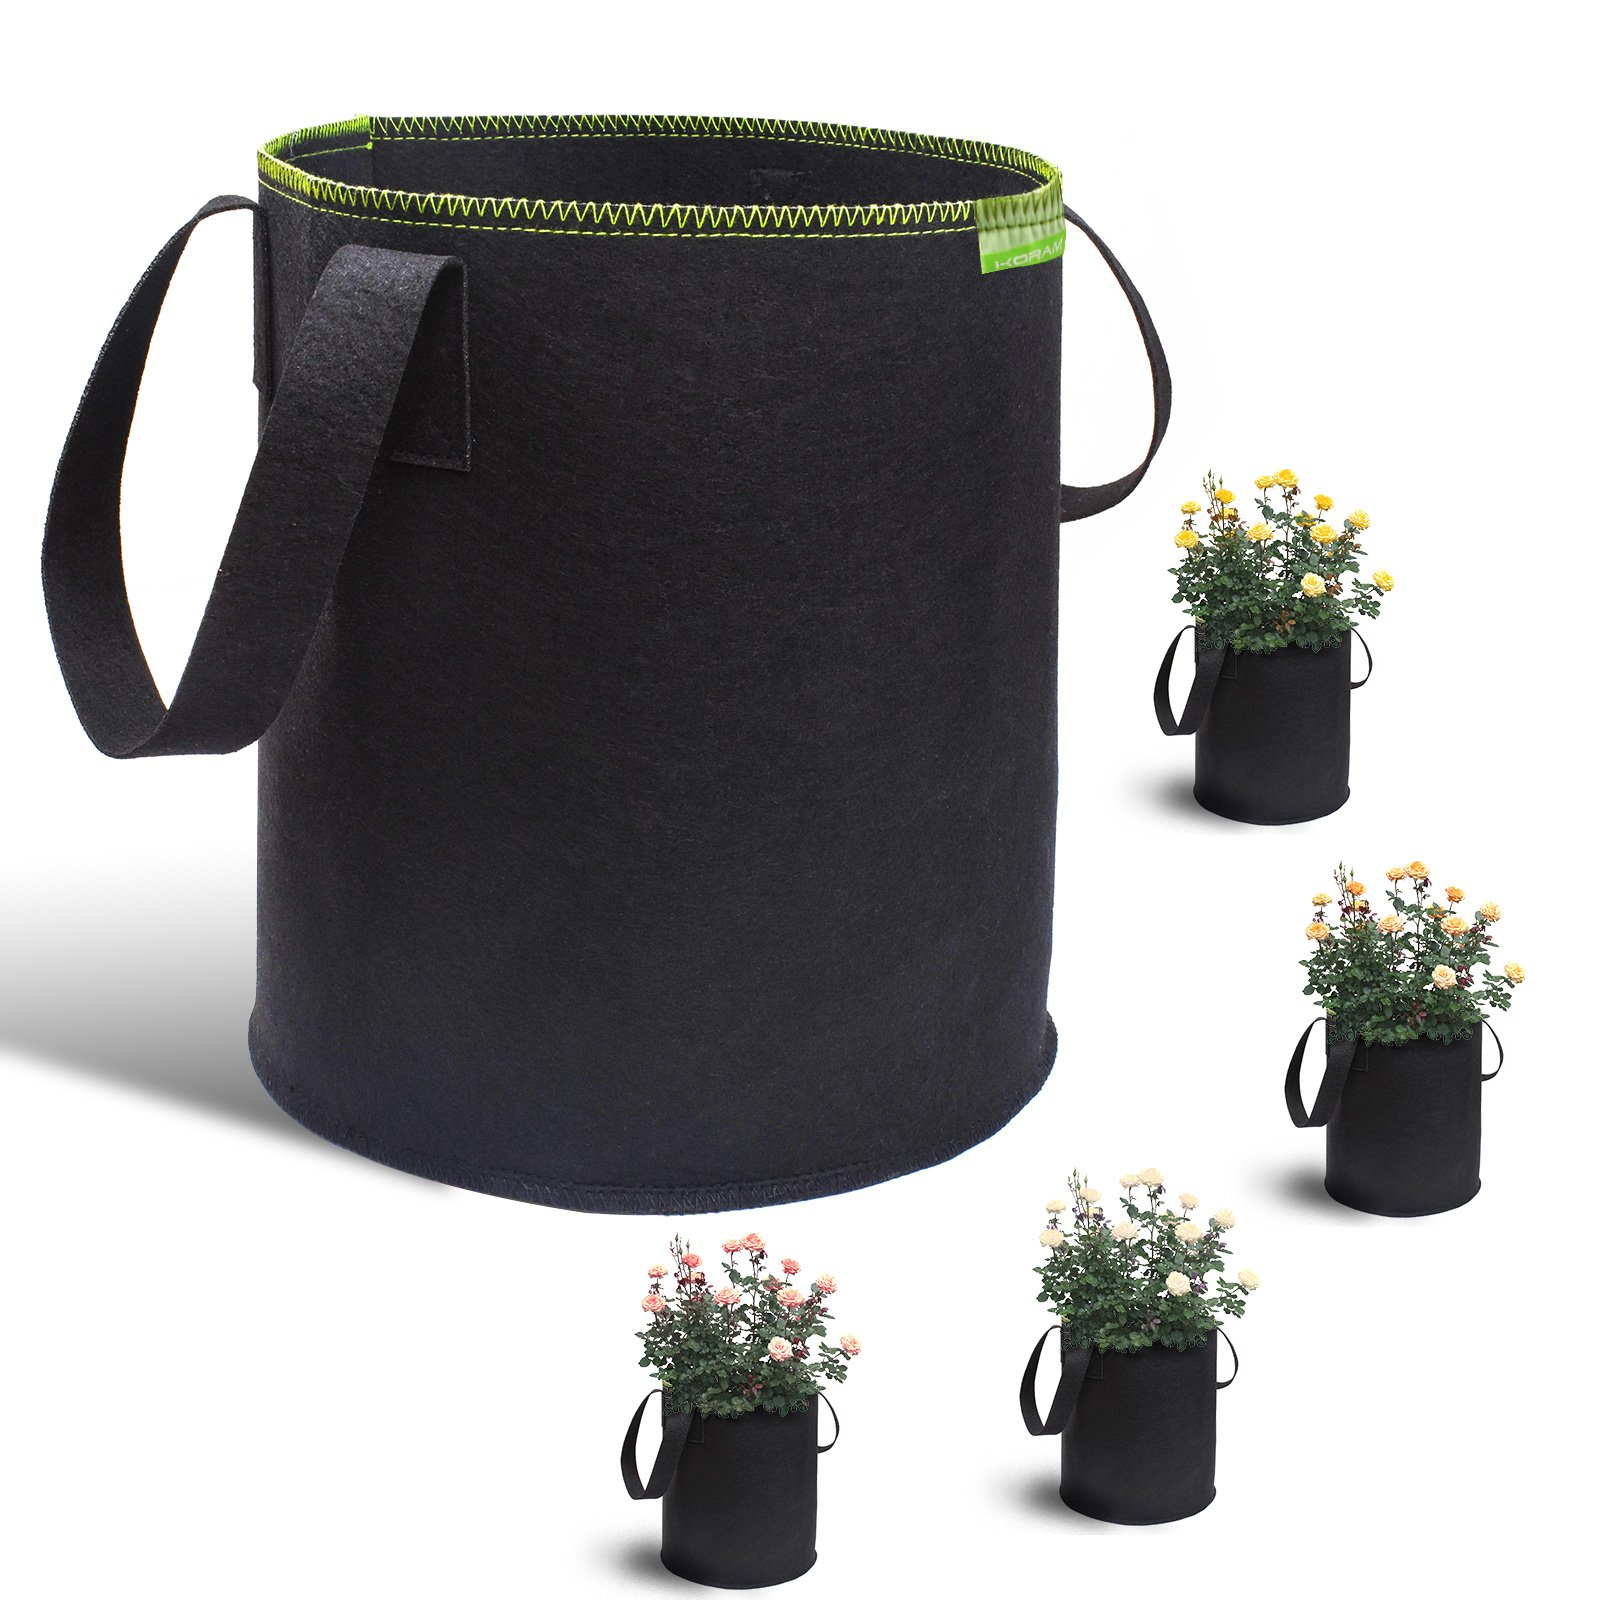 KORAM 5-Pack 8 Gallon Garden Grow Bags Soft-Sided Fabric Plant Pots Aeration Quality Planting Container with Handles for Growing Trees, Plants, Flowers, Vegetables, Tomatoes